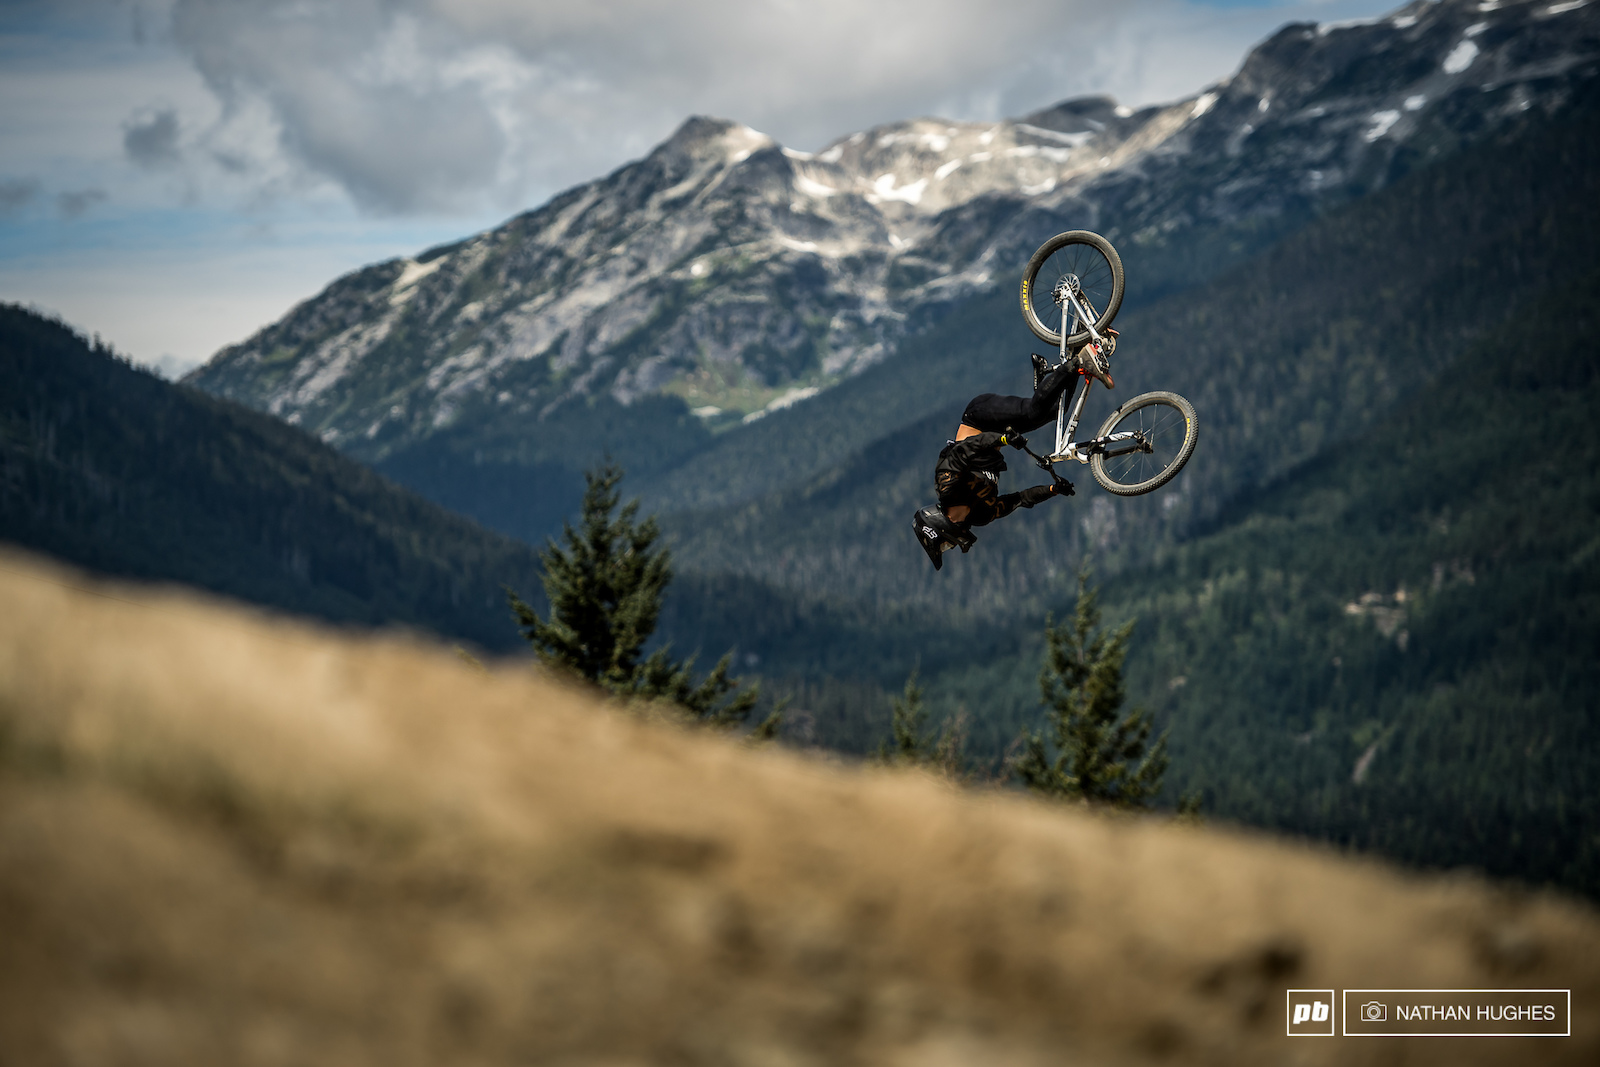 Nico Scholze is yet to put a big score on the board at Crankworx but remains one of the most exciting riders to watch with some insane tricks up his sleeve.